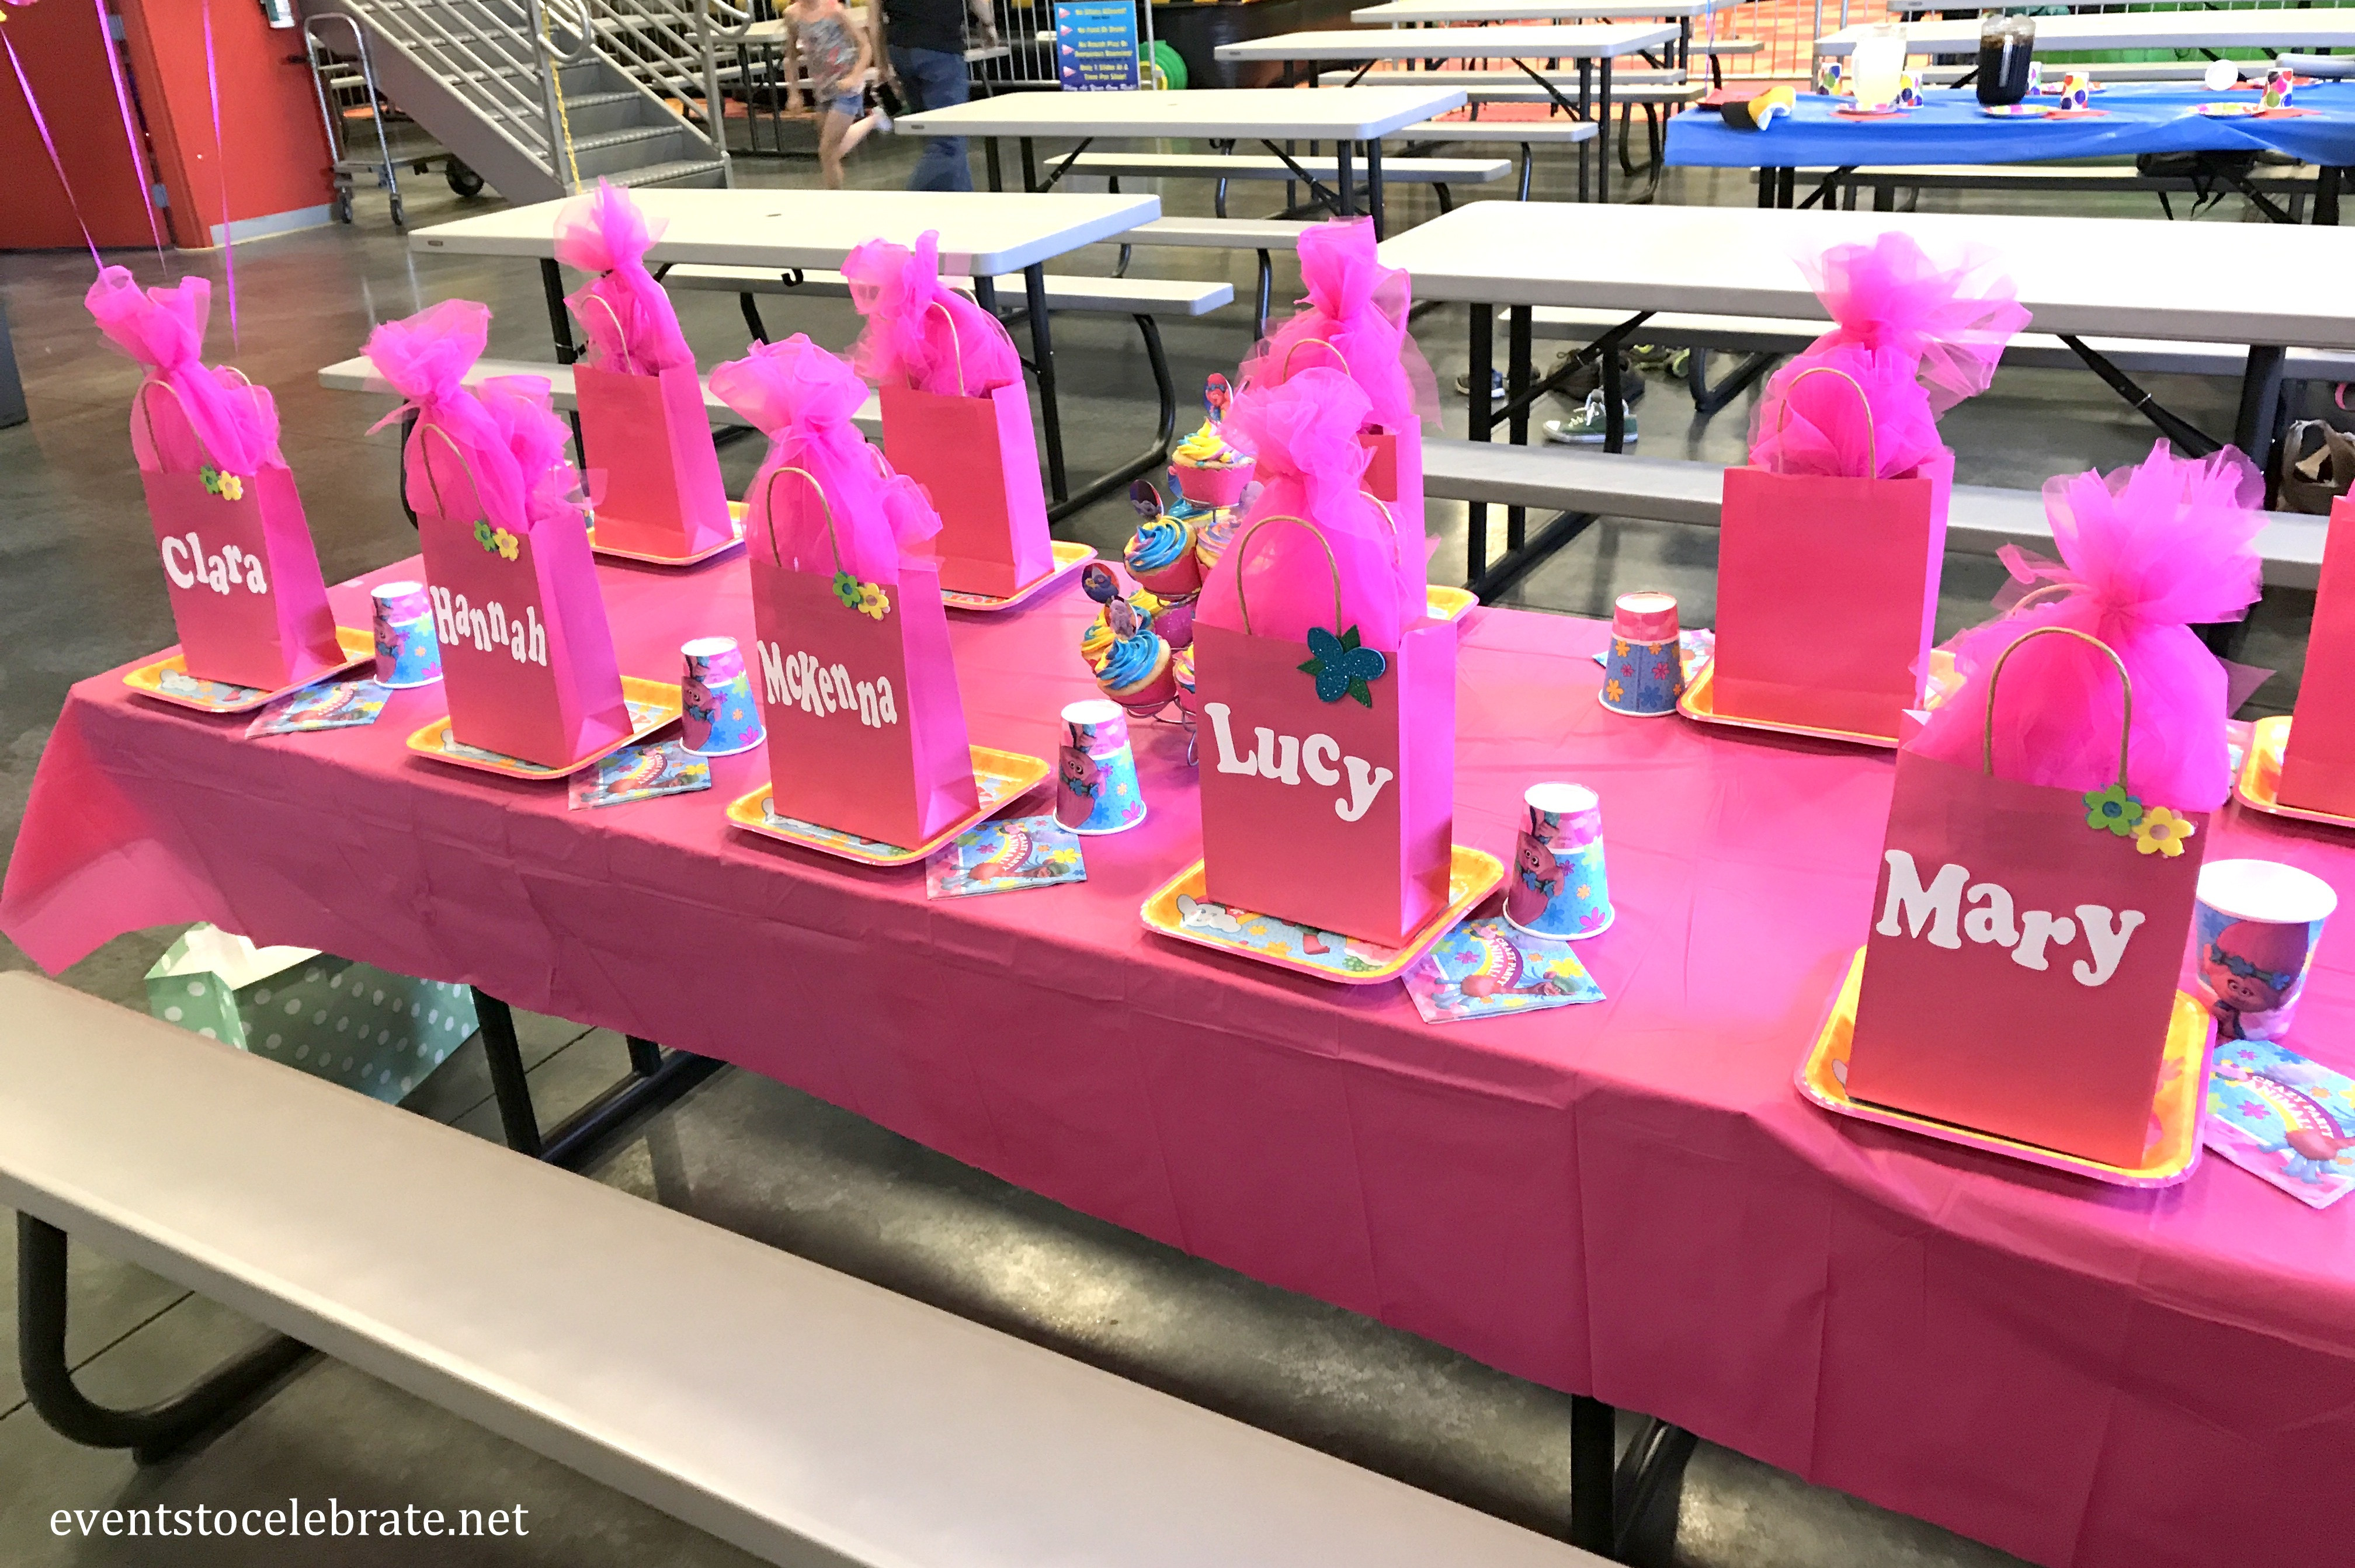 Best ideas about Troll Birthday Party . Save or Pin Trolls Birthday Party Ideas events to CELEBRATE Now.